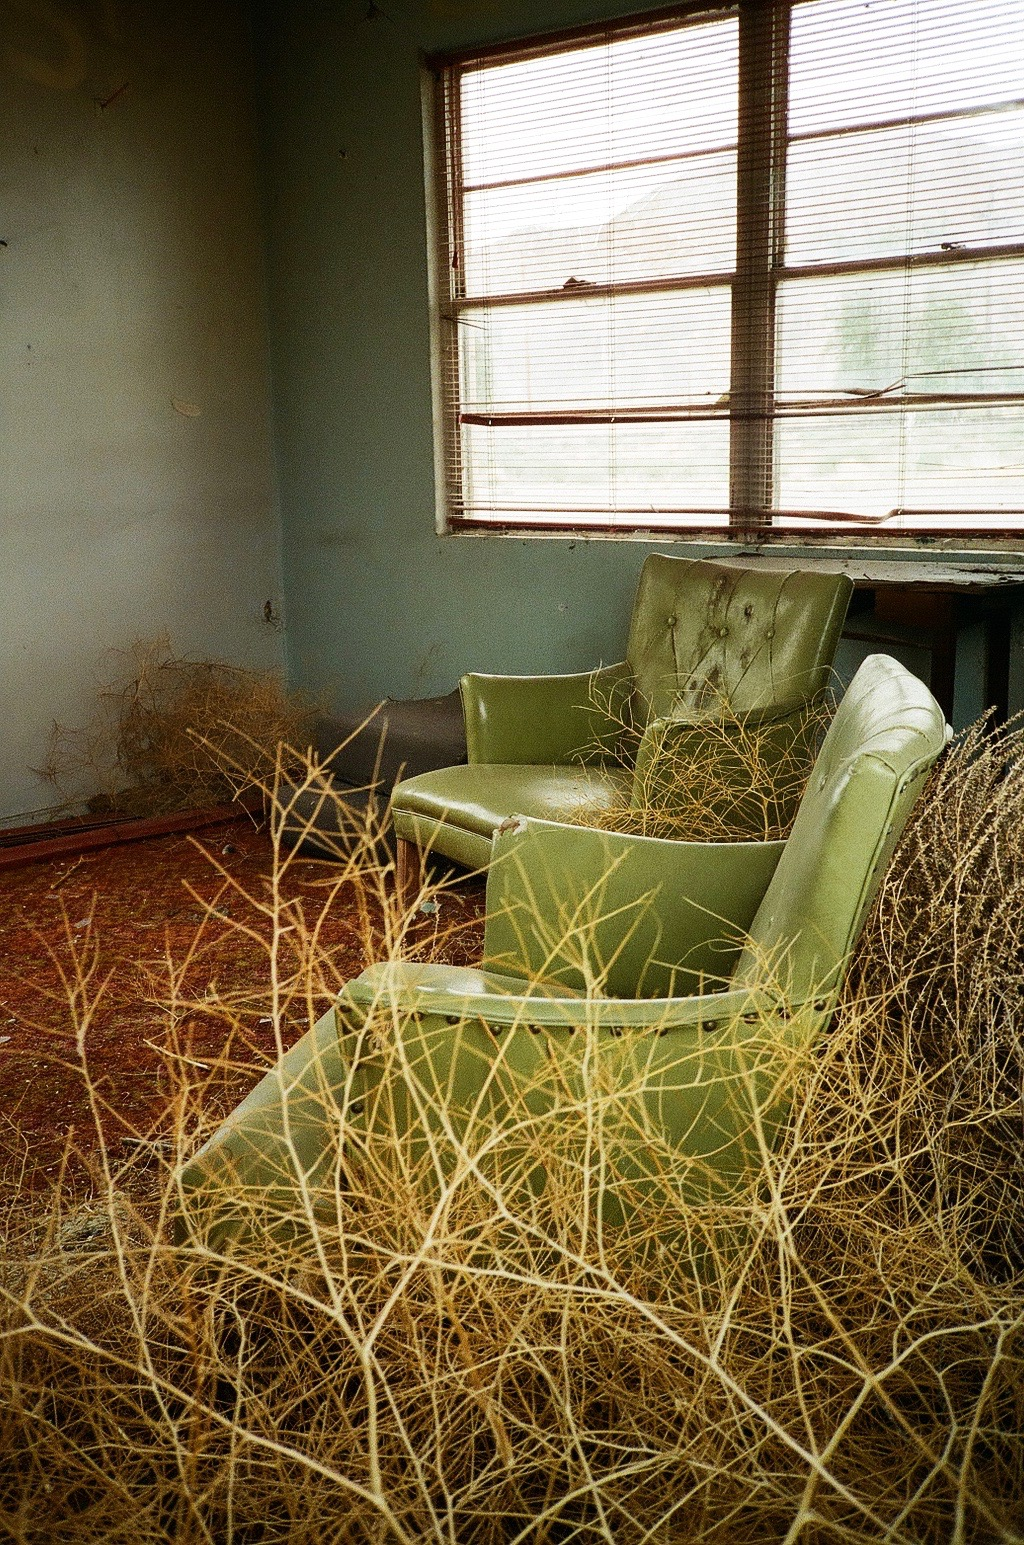 35mm film photography Tumbleweeds inside the Thompson Springs Motel, Utah